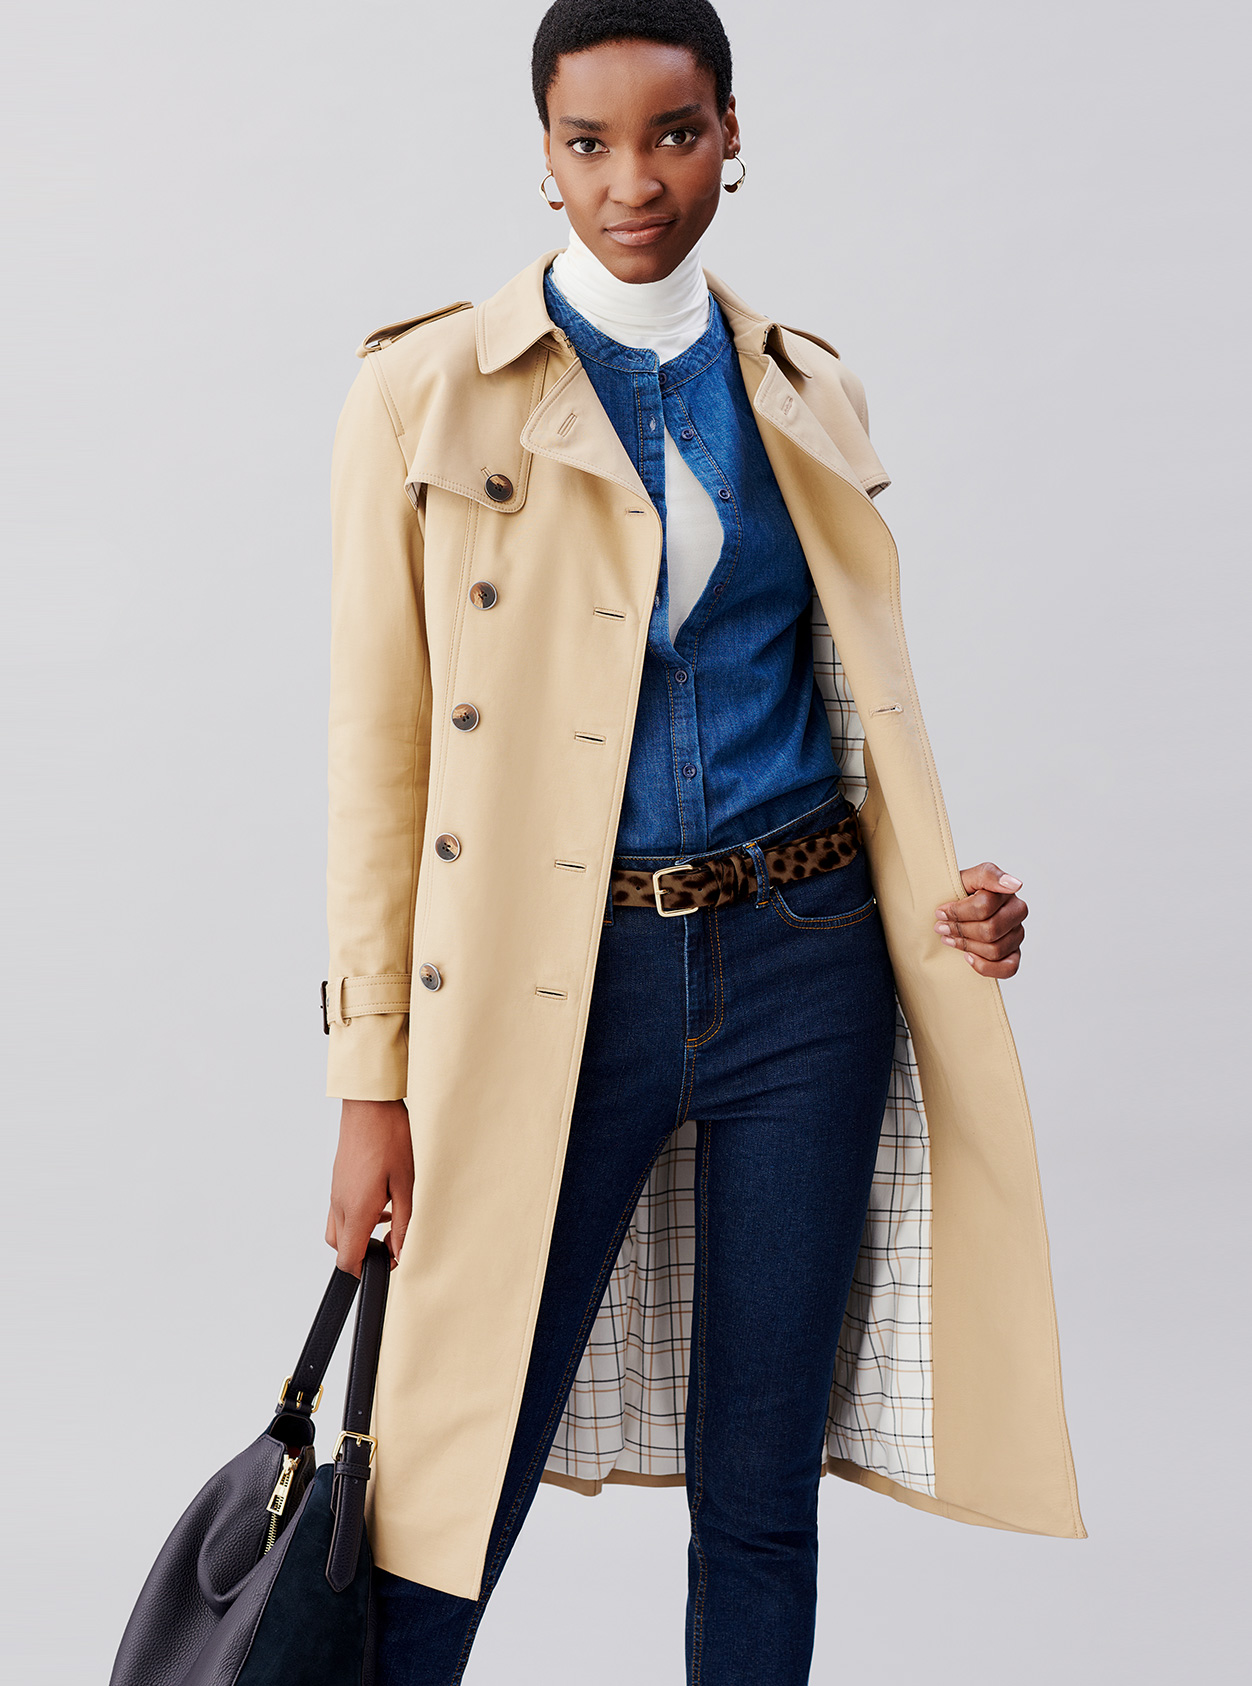 Hobbs beige trench coat for women layered over a denim shirt, white turtleneck top, blue denim jeans, leopard print belt and a black leather bag.